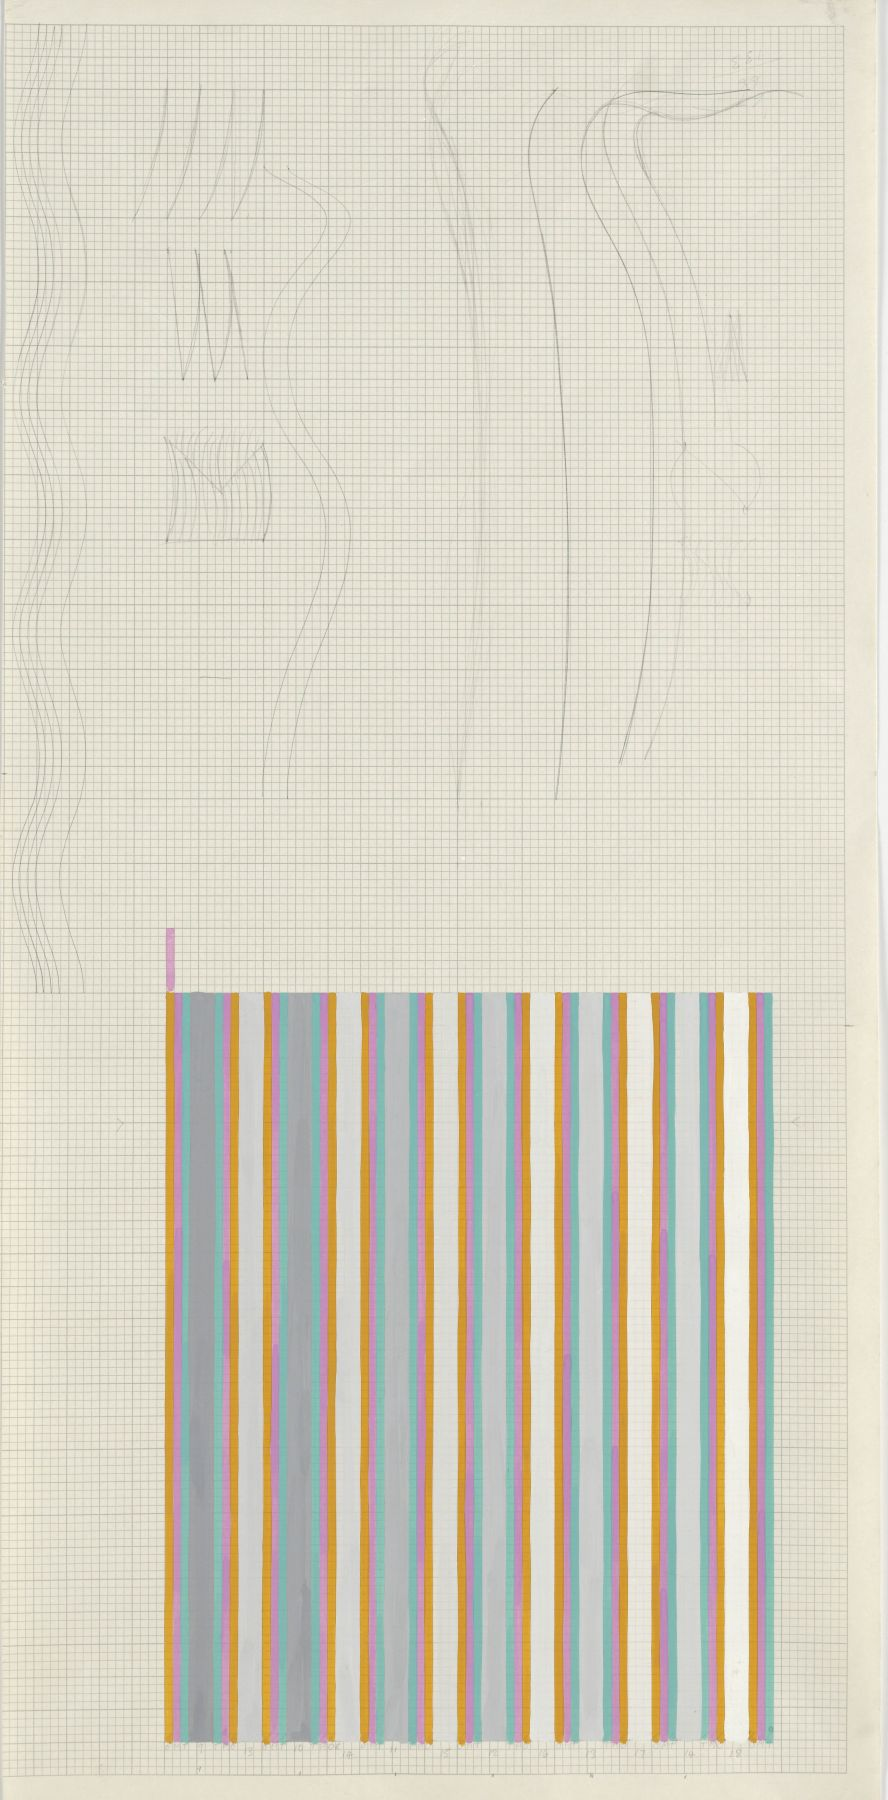 Bridget Riley, Untitled (Related to 'Sound'), 1972